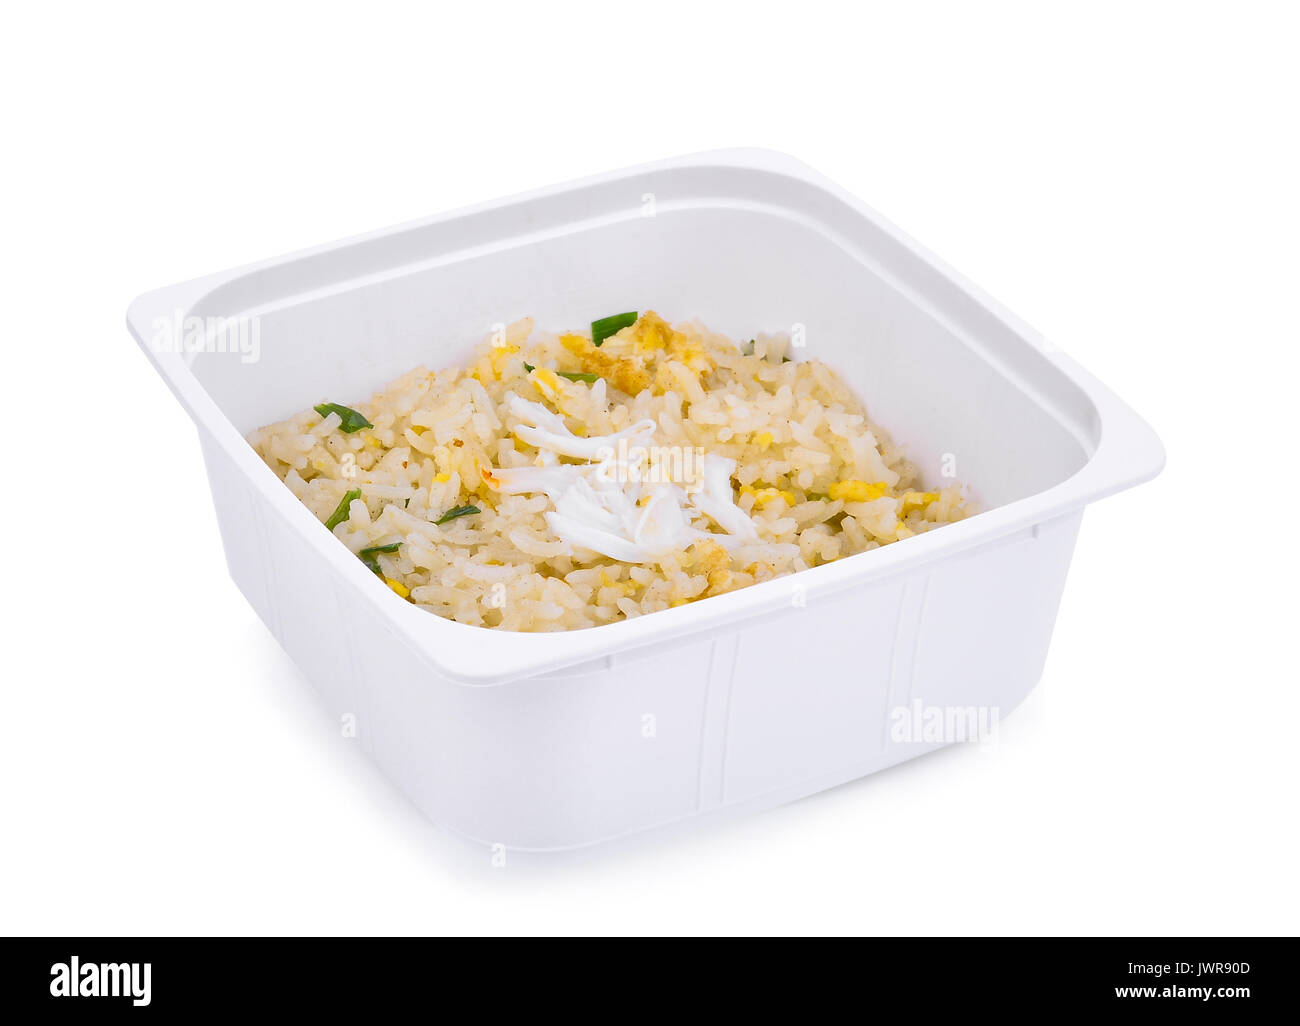 junk food, crab fried rice, in white plastic box isolated on white background - Stock Image